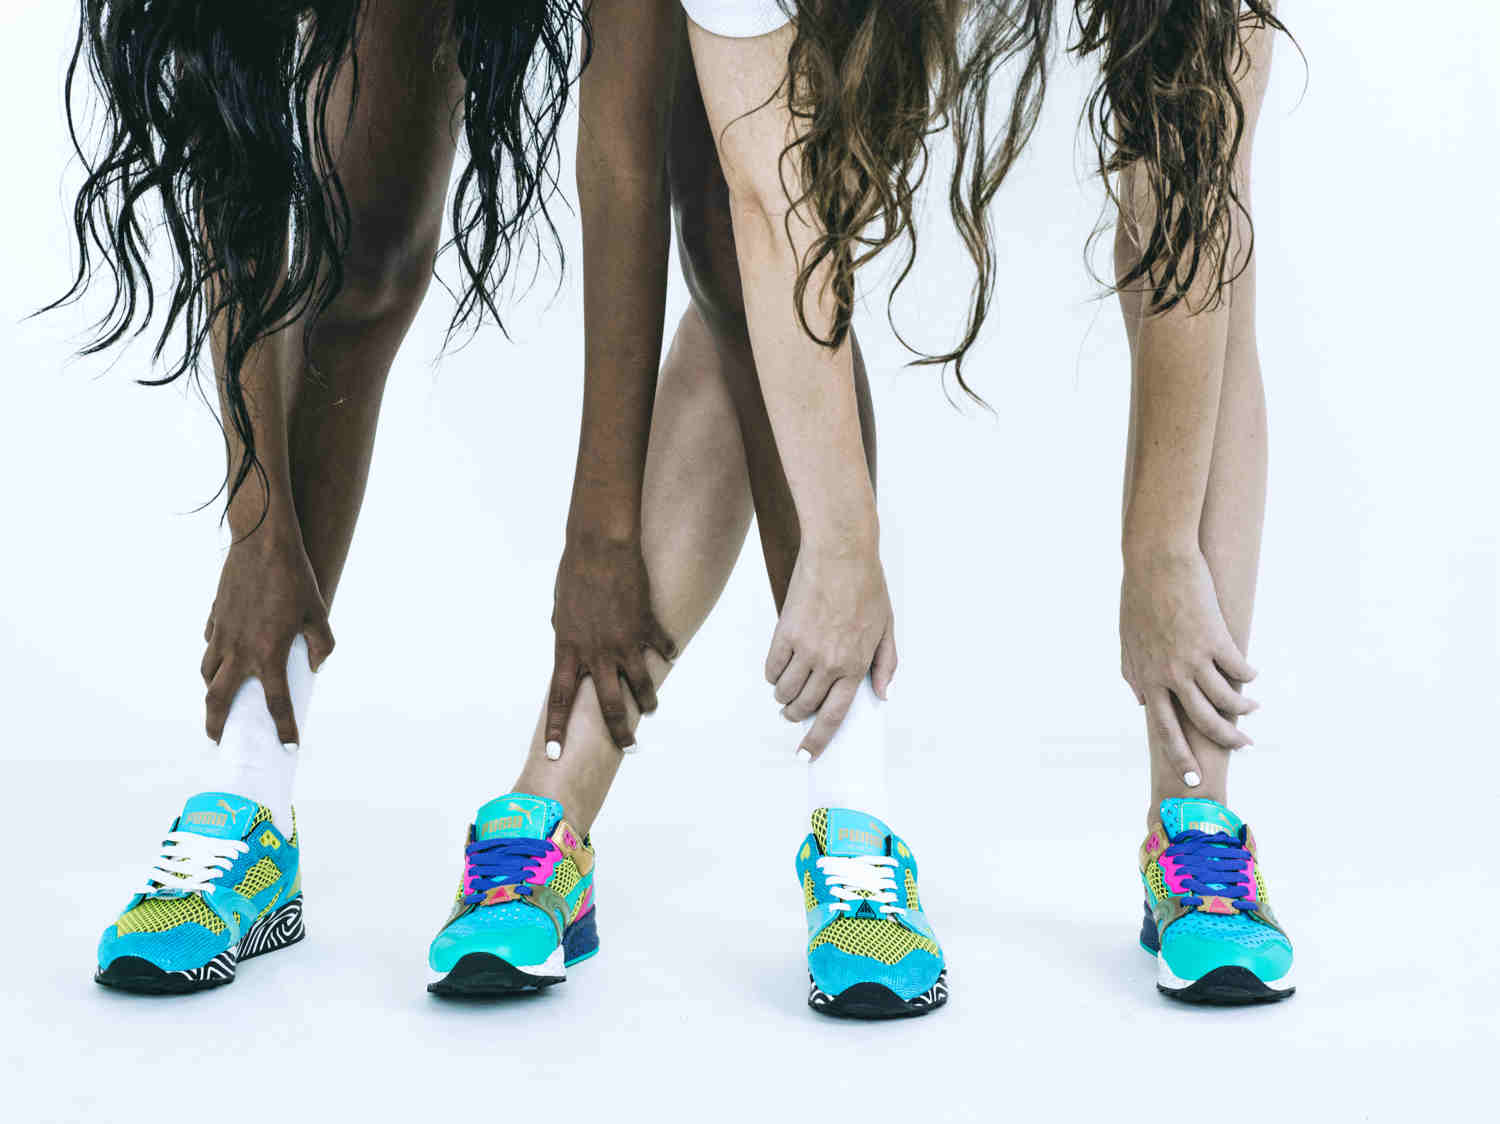 Puma Solange: The Search for the Perfect Sneaker Design